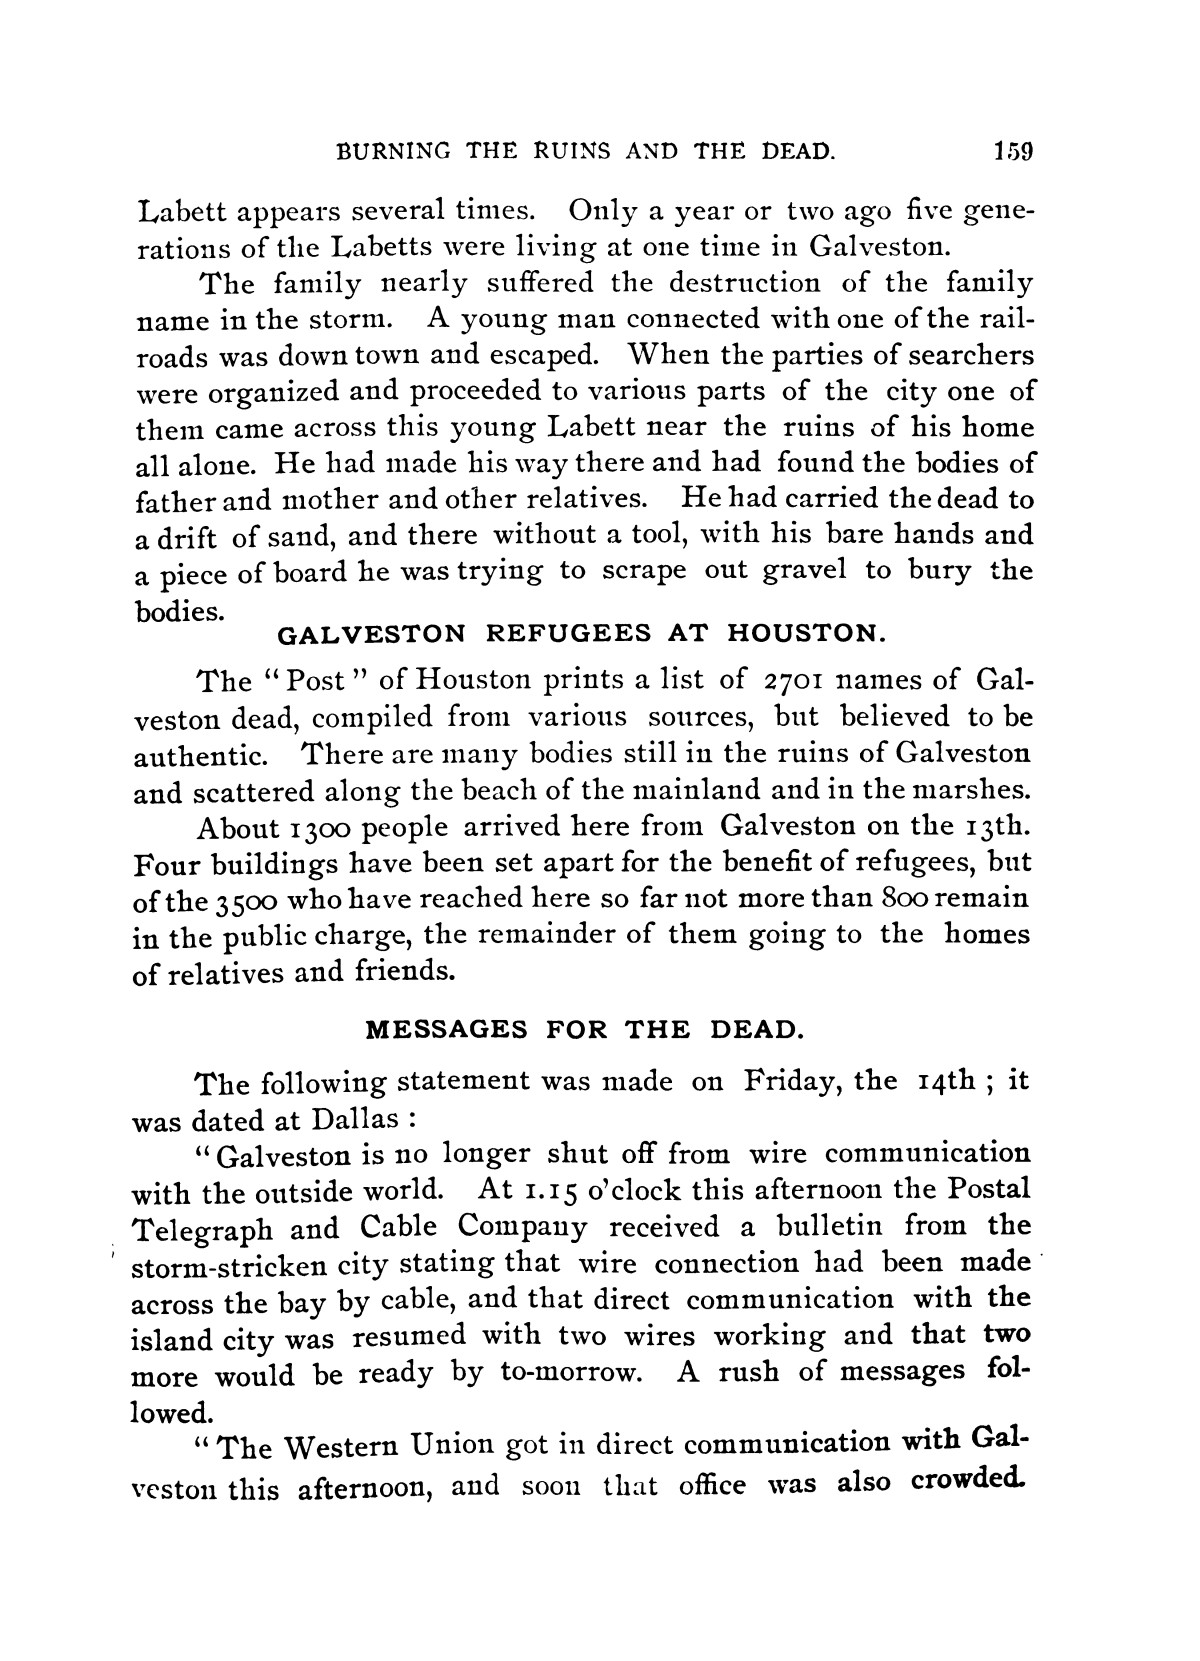 The Great Galveston Disaster, Containing a Full and Thrilling Account of the Most Appalling Calamity of Modern Times                                                                                                      159